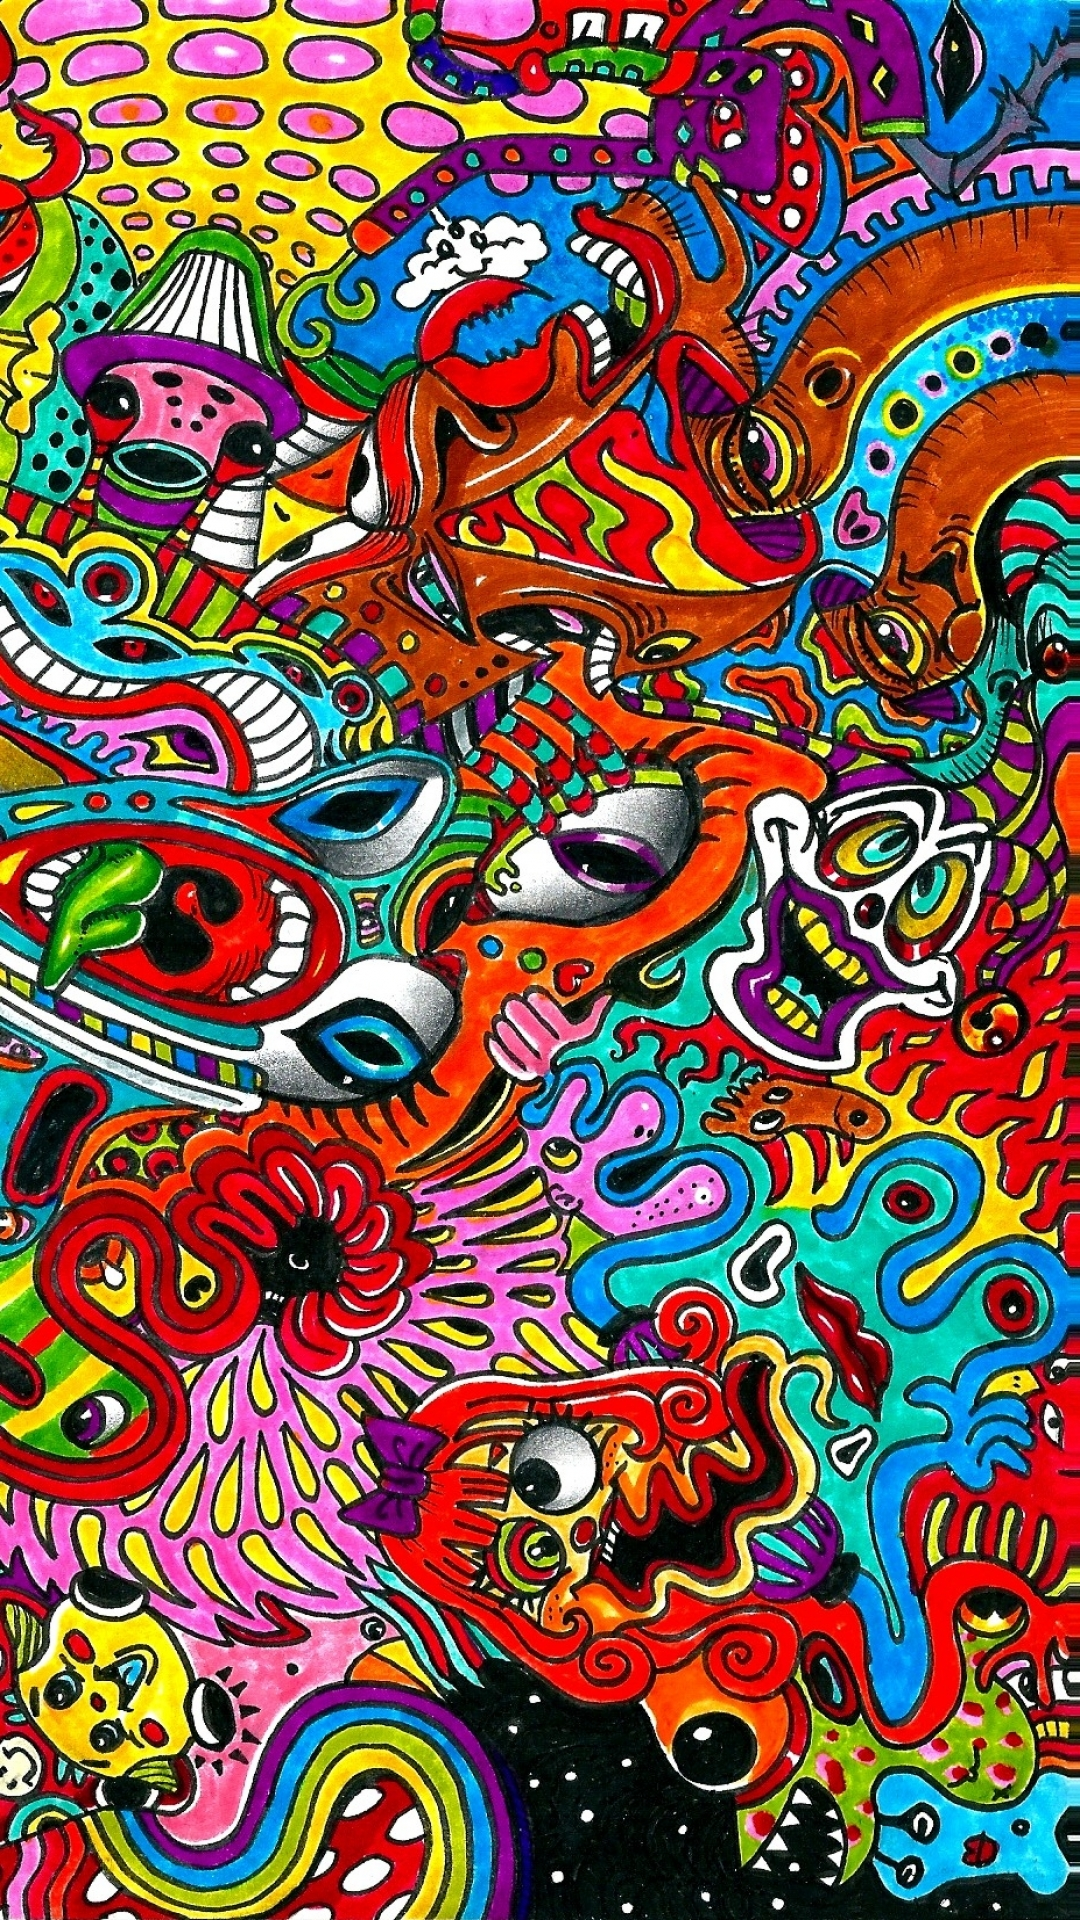 Free Download Psychedelic Phone Wallpaper Awesome 47